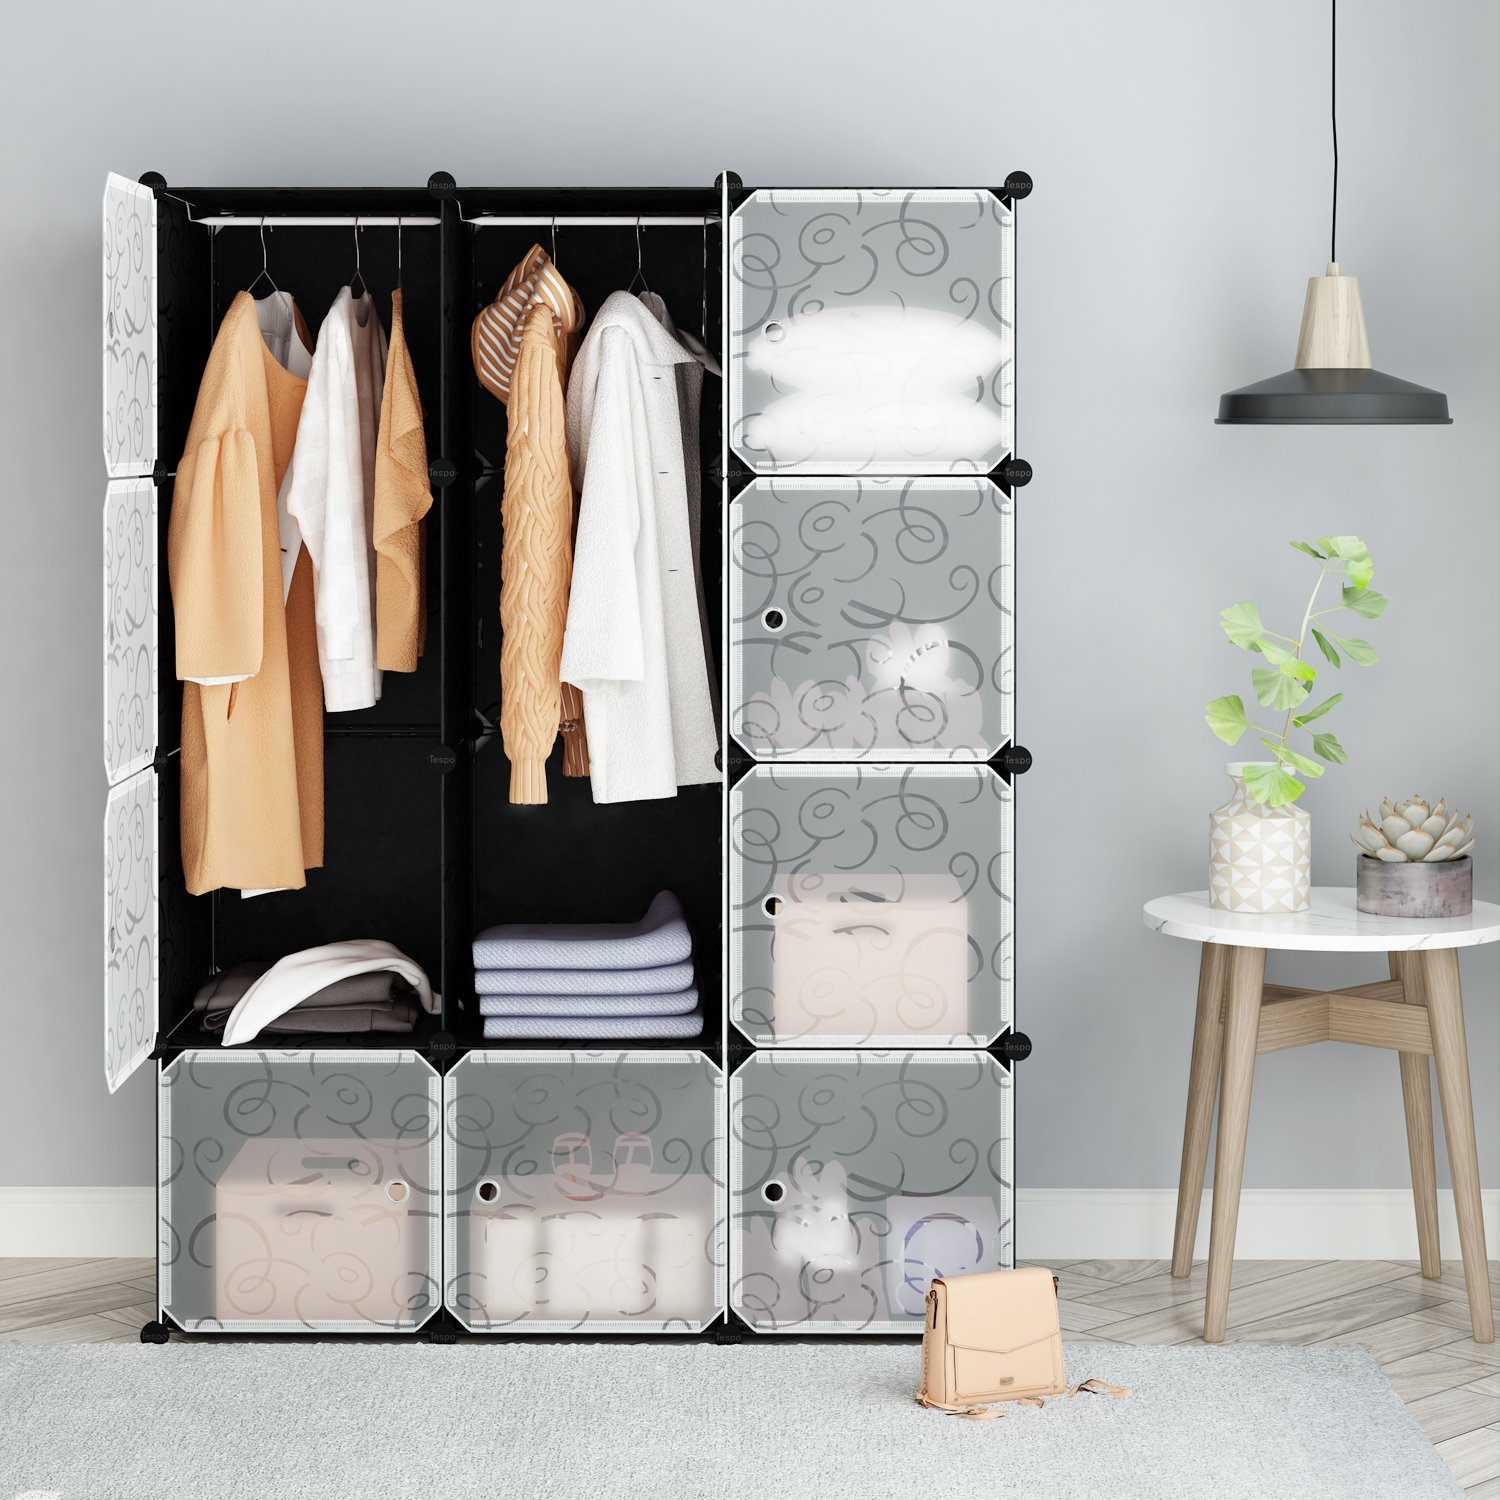 x space com awesome closet simple your ways lovely jl ideas closets superonlinesaver to improve